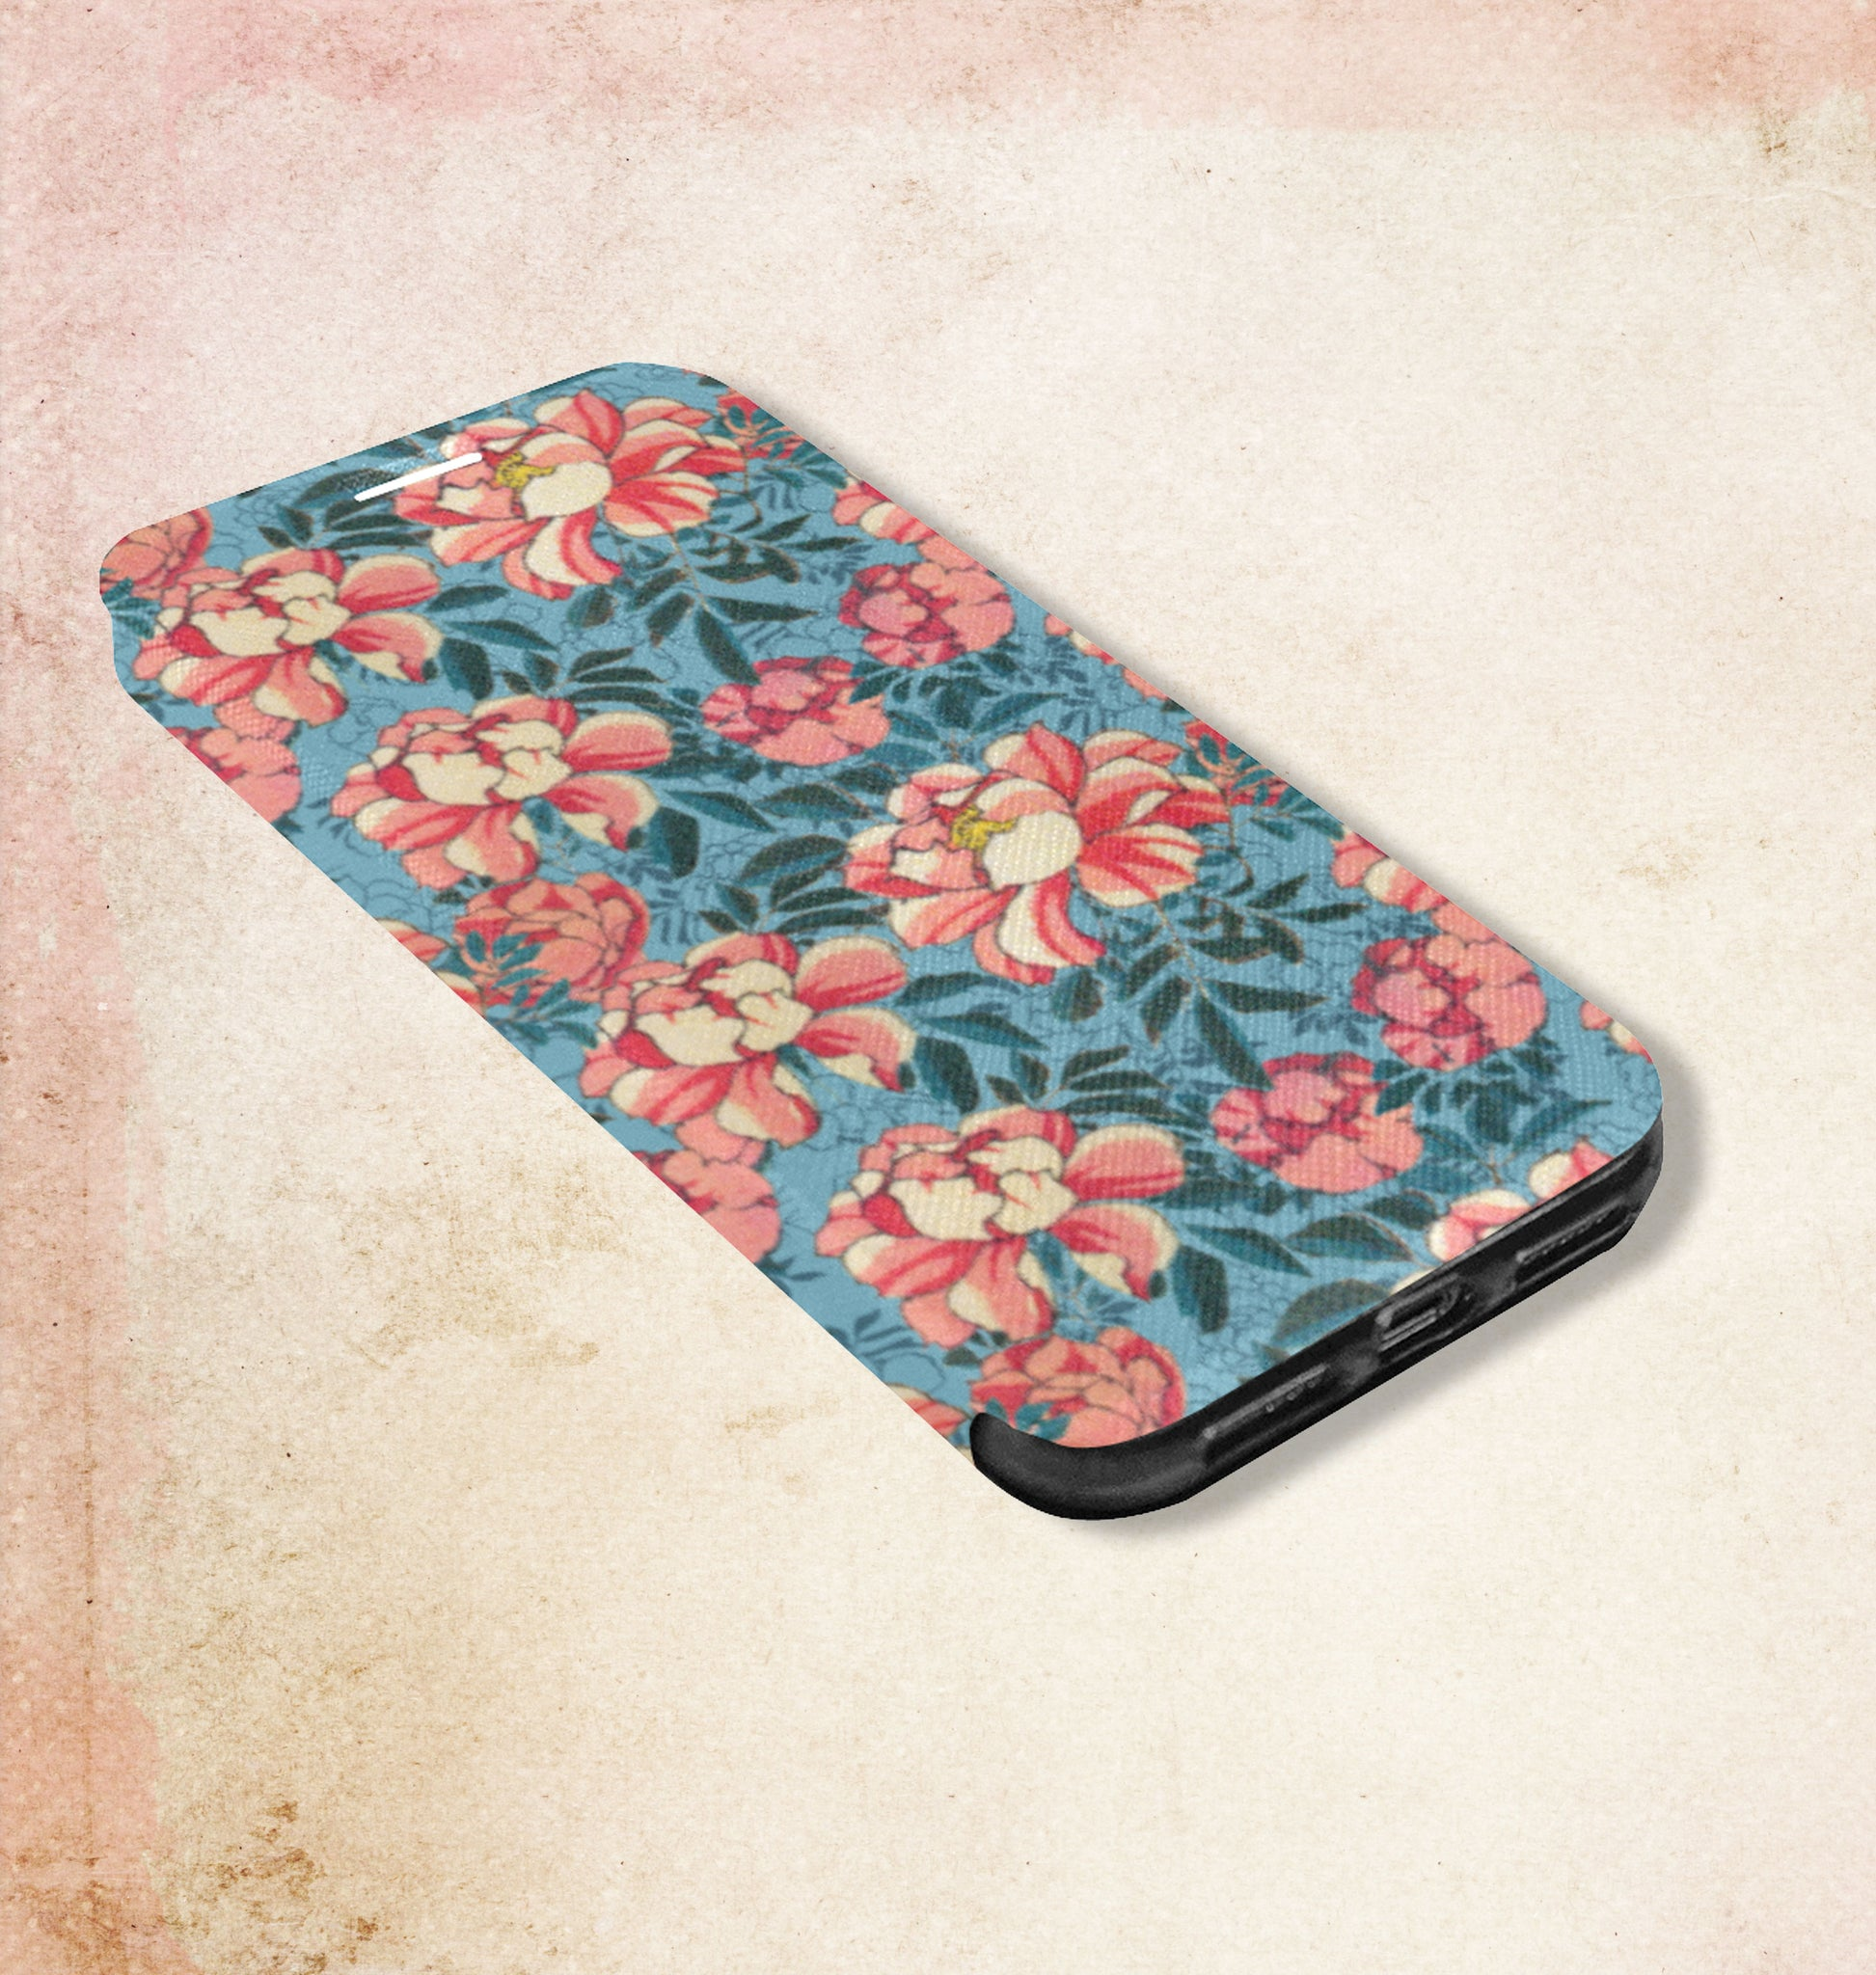 Cover Case for iPhone X Motif Wild Roses